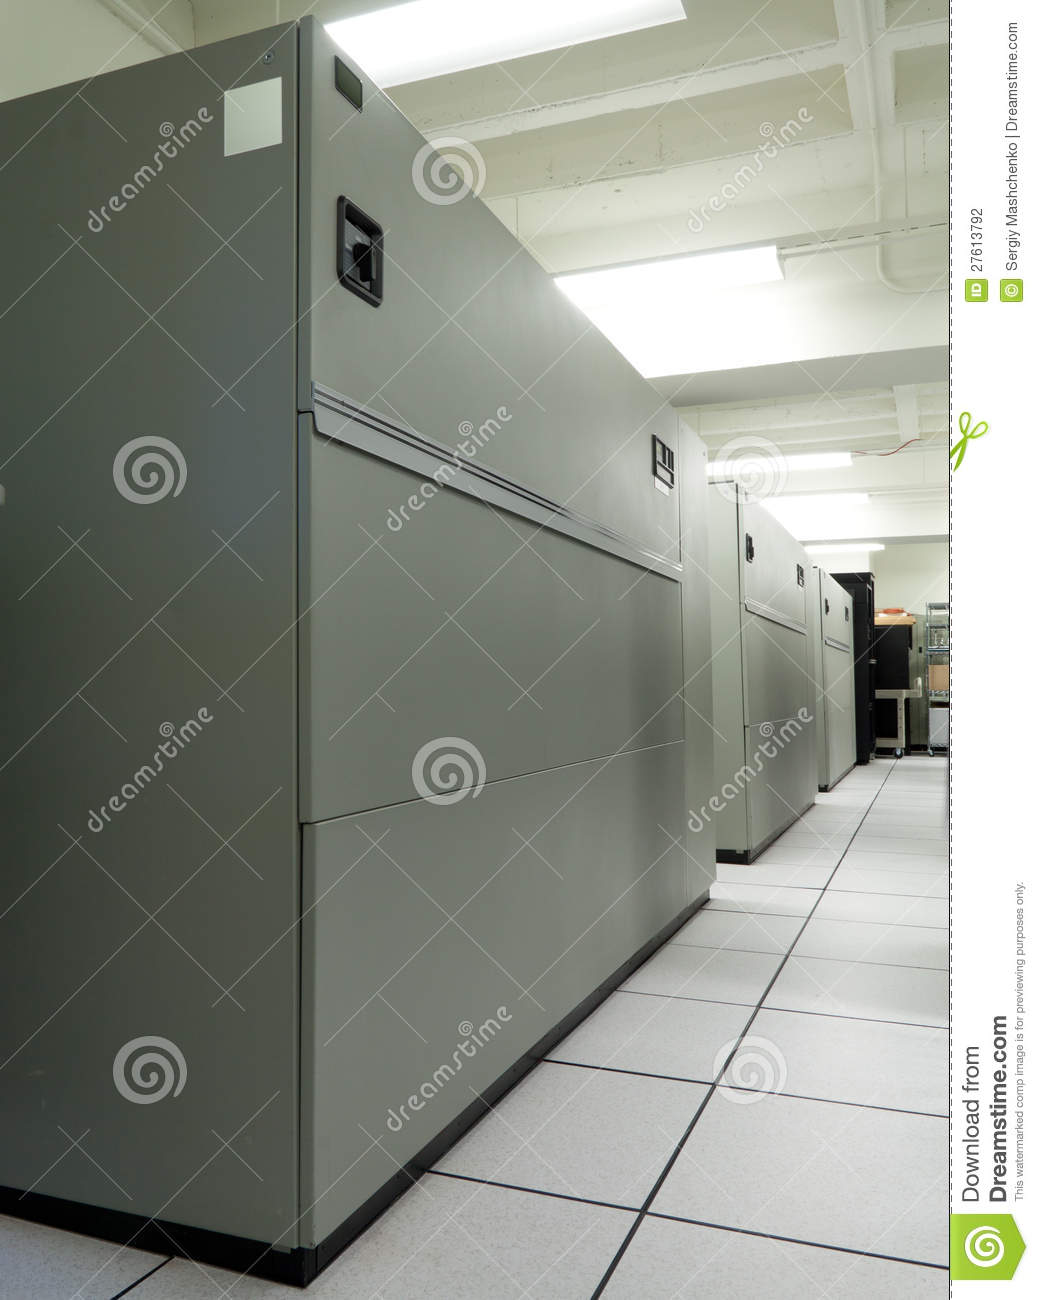 Computer Room Air Conditioning Crac Units Stock Photo